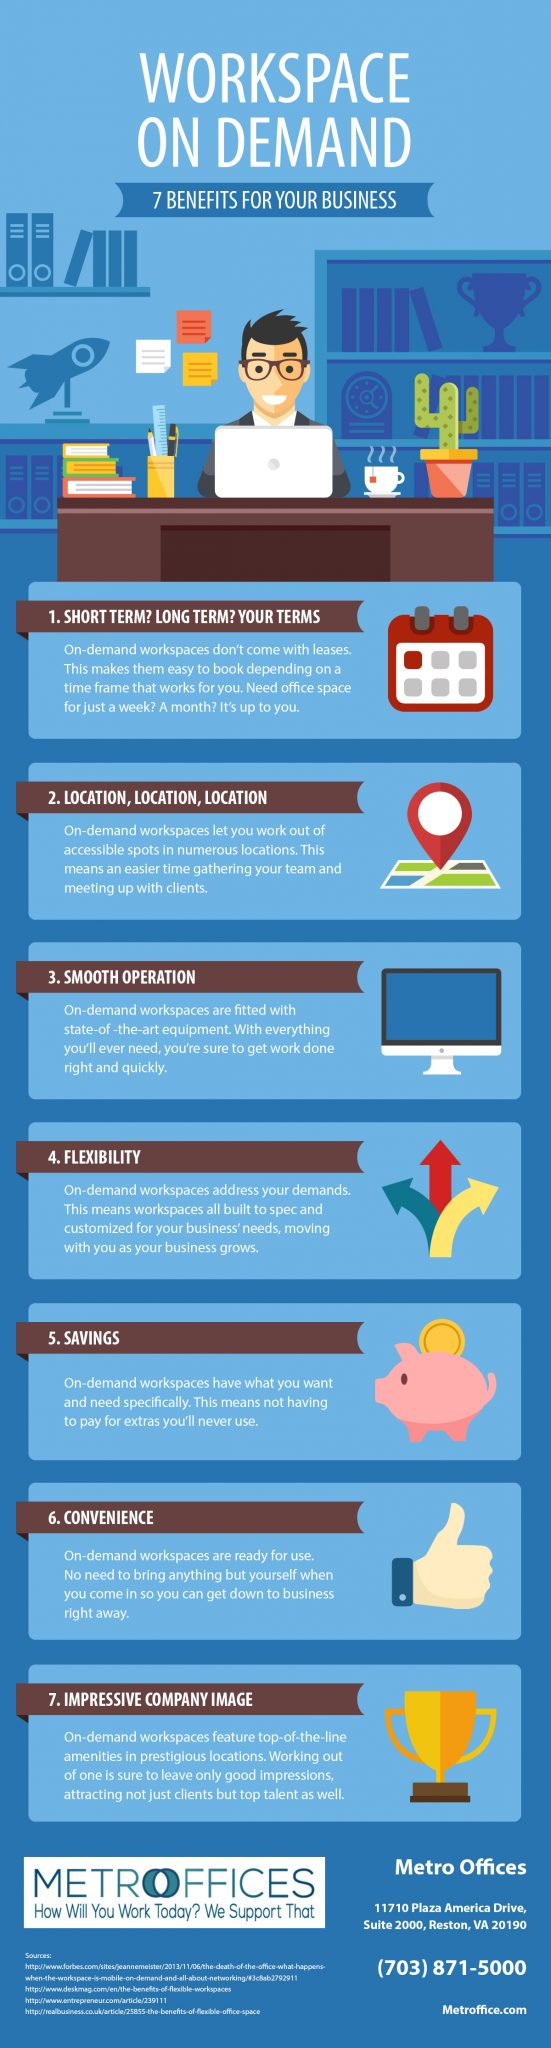 Infographic - 7 Worskspace on Demand Benefits For Your Business